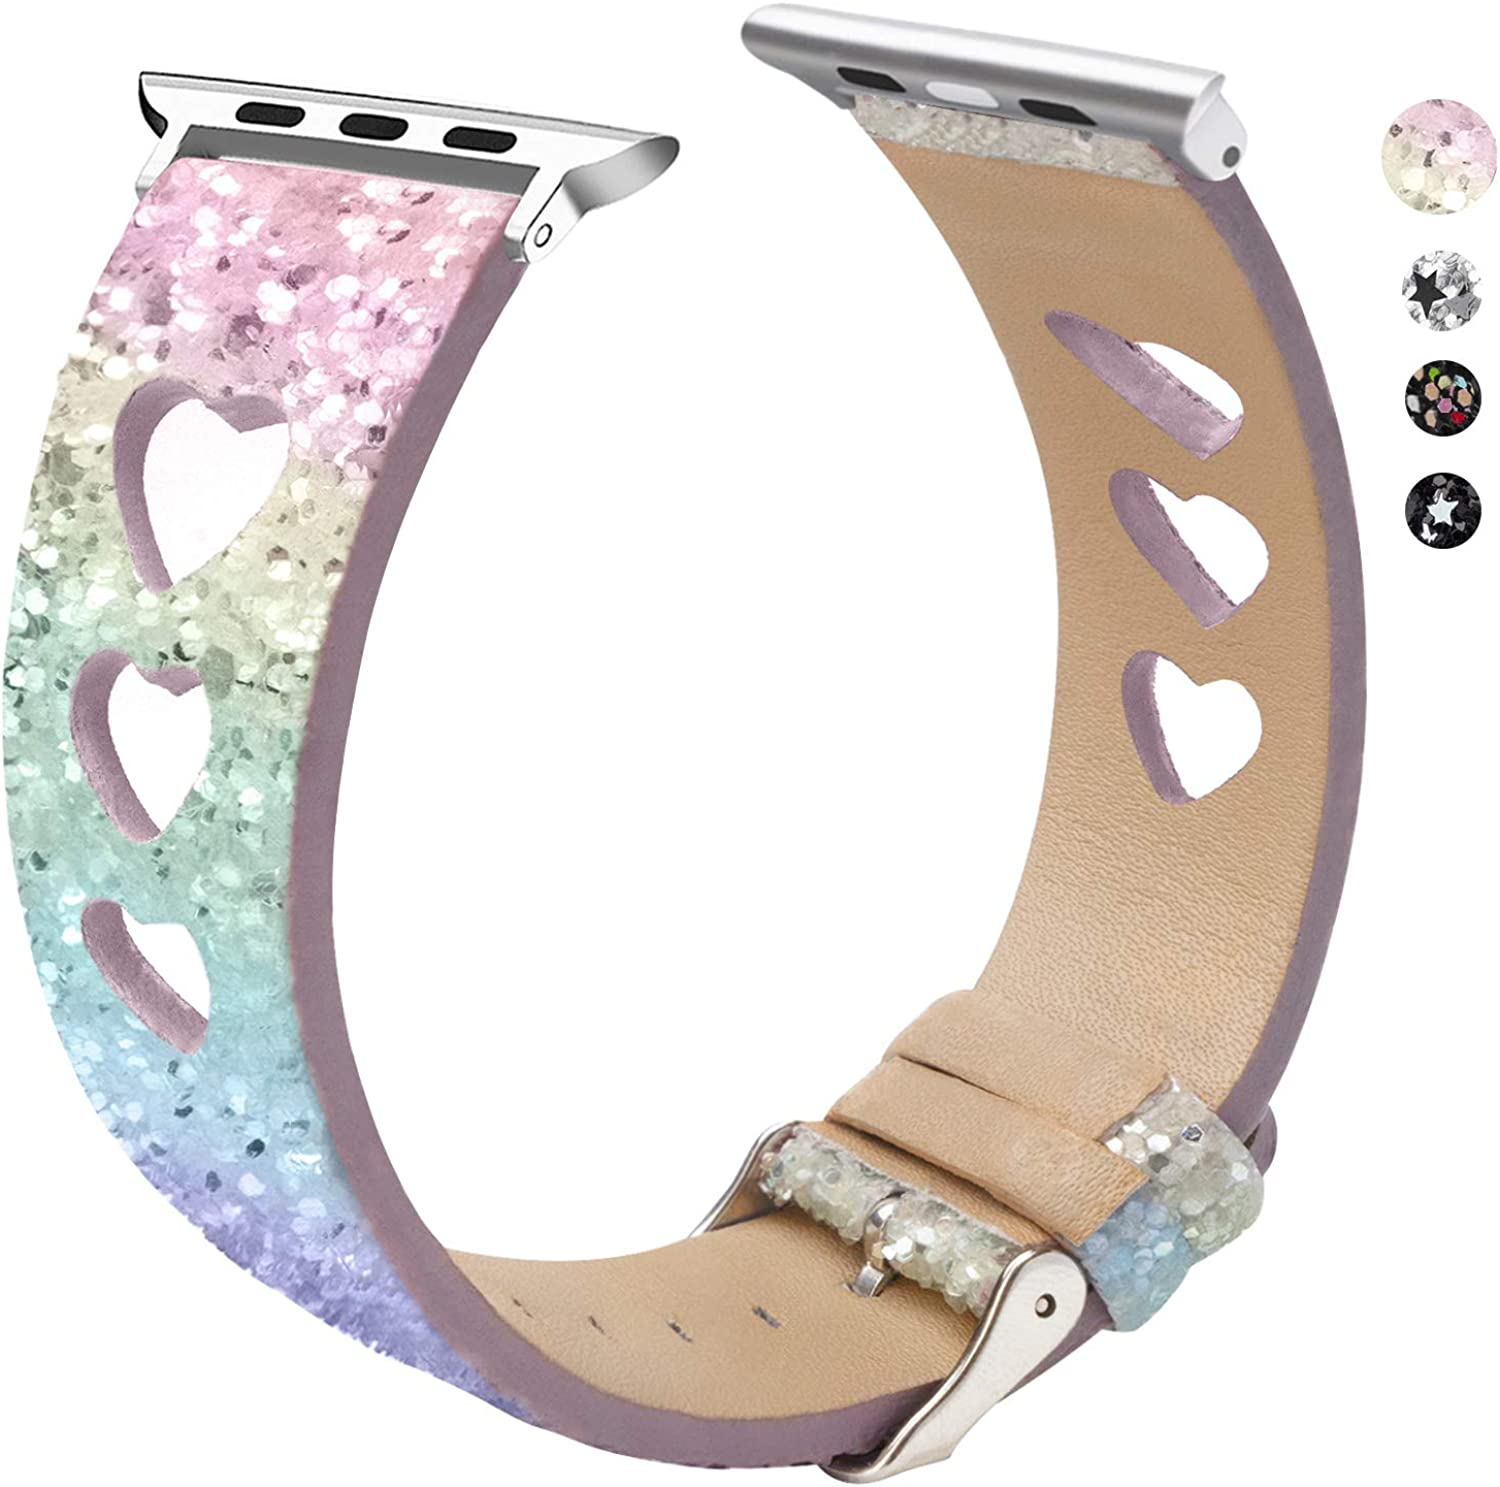 EurCross Glitter Band Compatible with Apple Watch Band 38mm 40mm 42mm 44mm, Shiny Bling Women Girls Leather Wristband Compatible with iWatch Series6 SeriesSE Series5 Series4 Series3 Series2 Series1